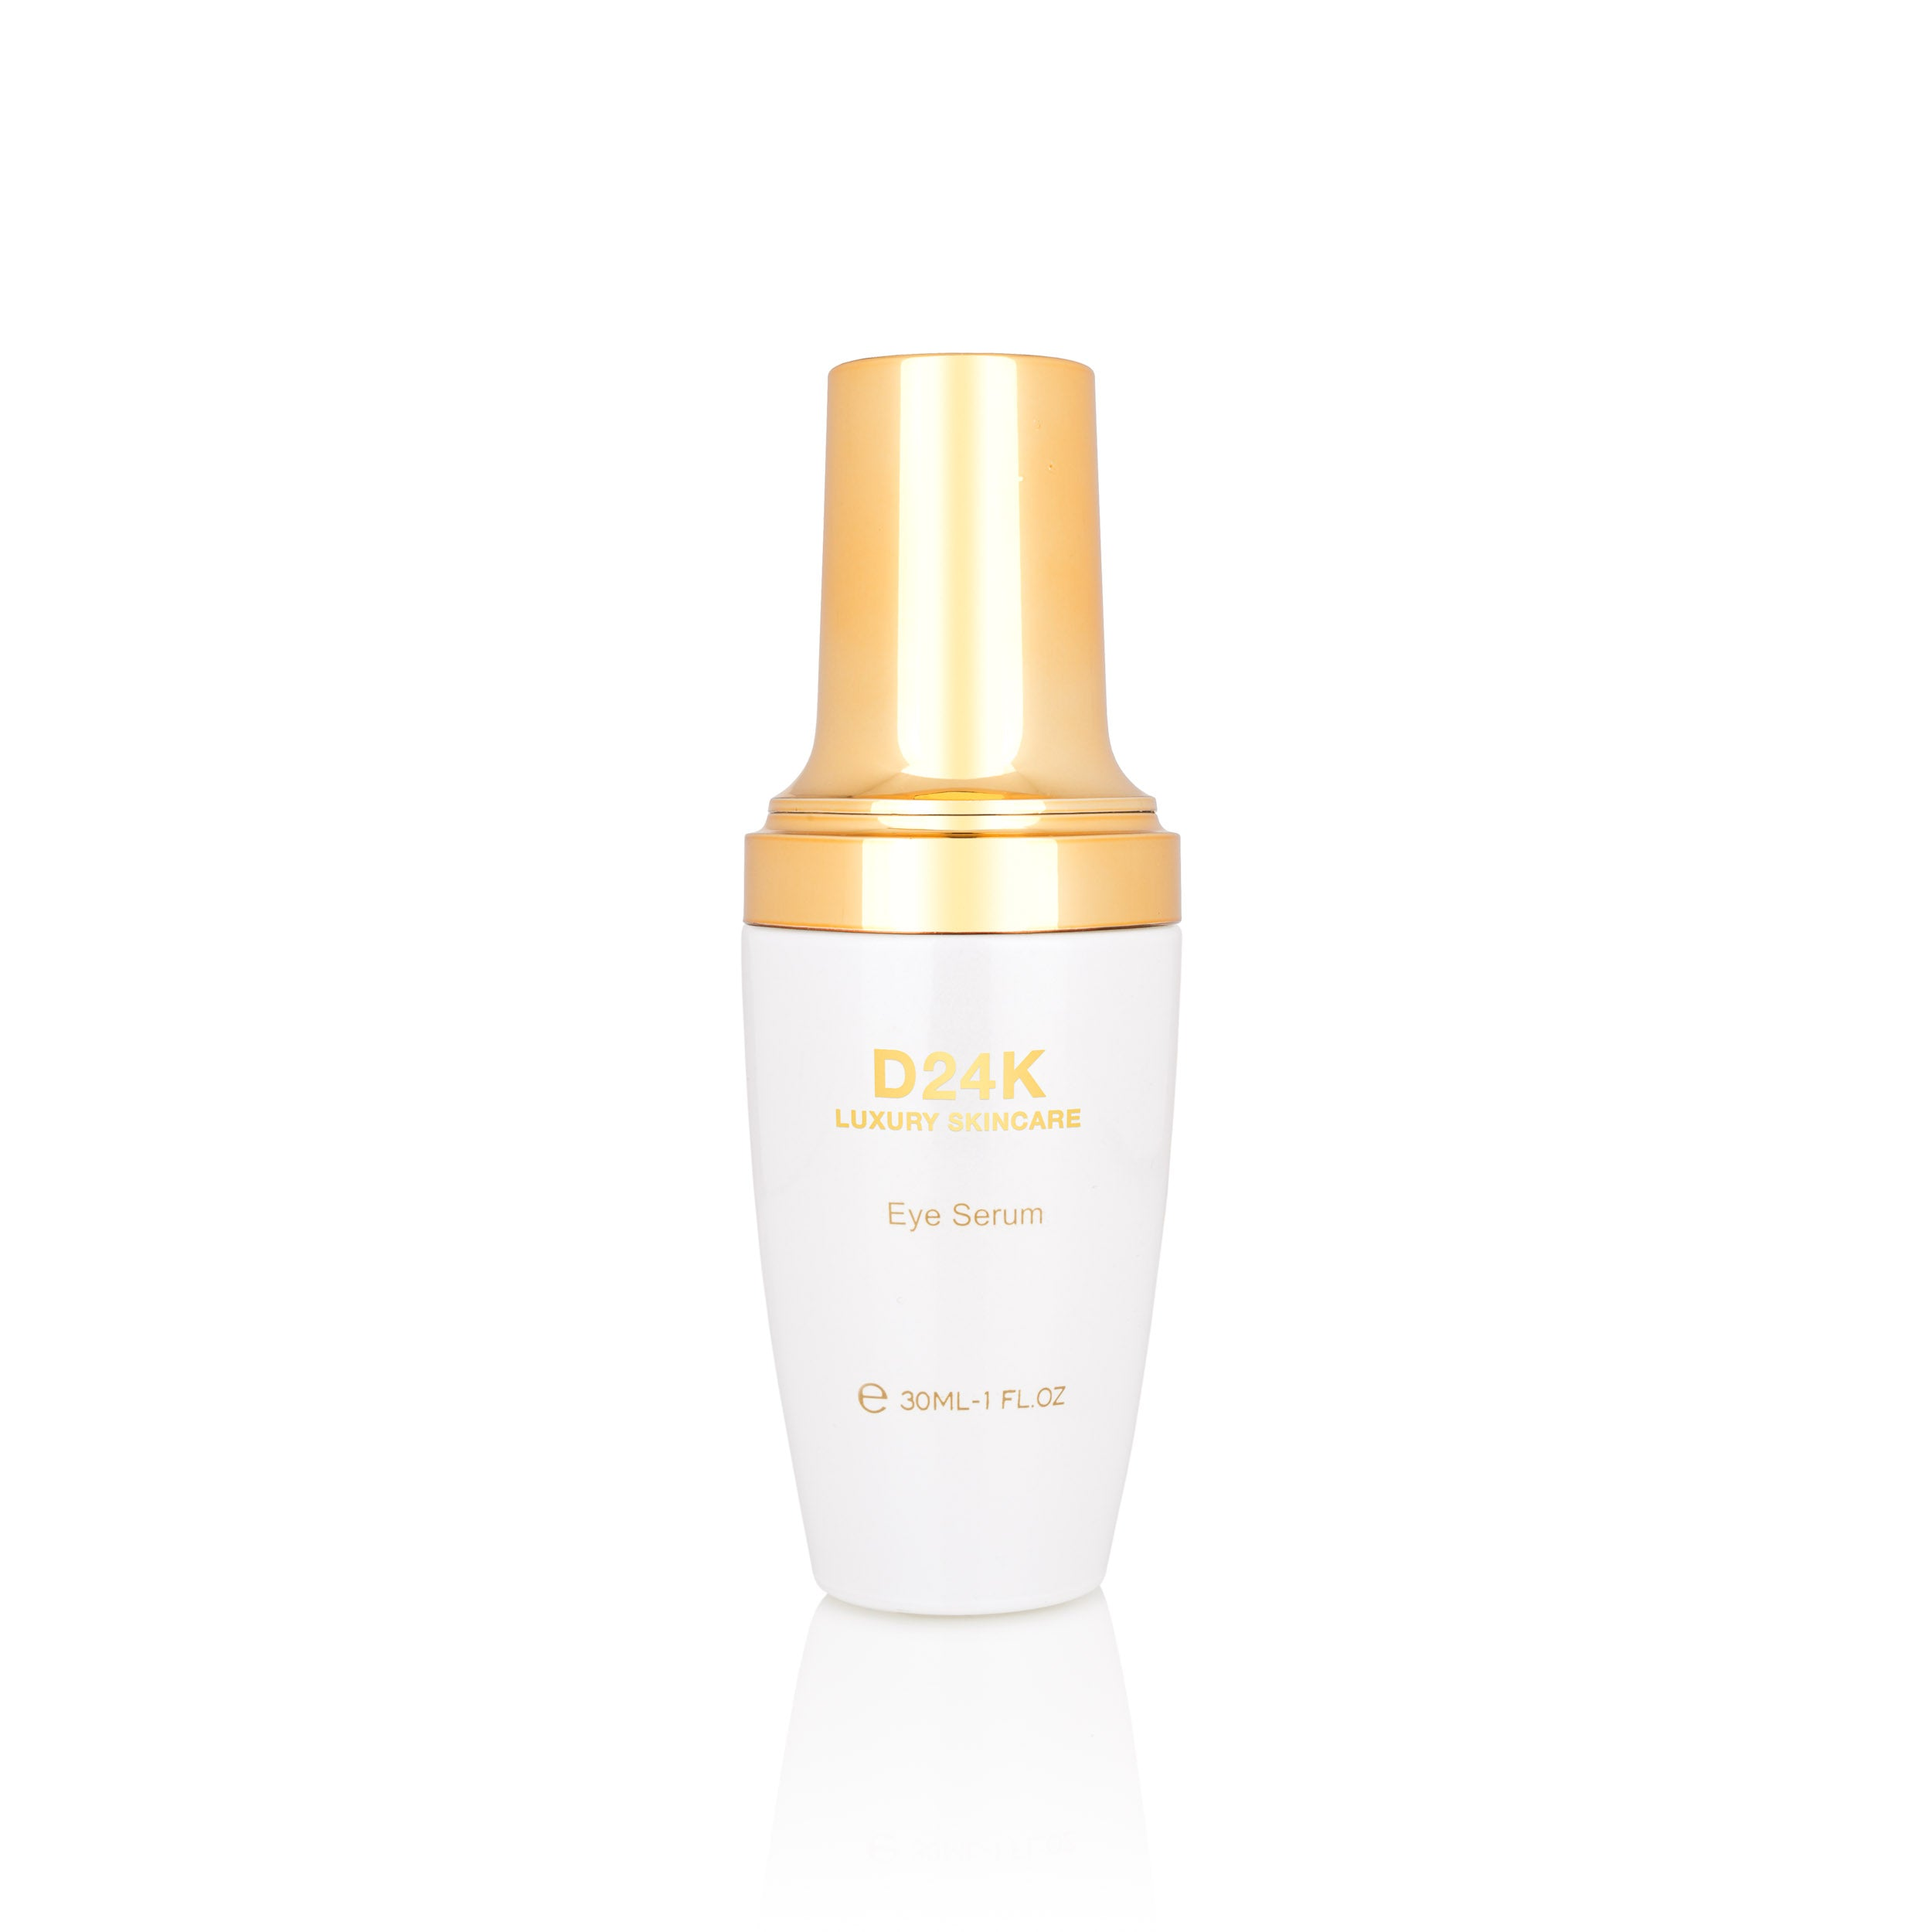 D24K - 24K Advanced Eye Serum